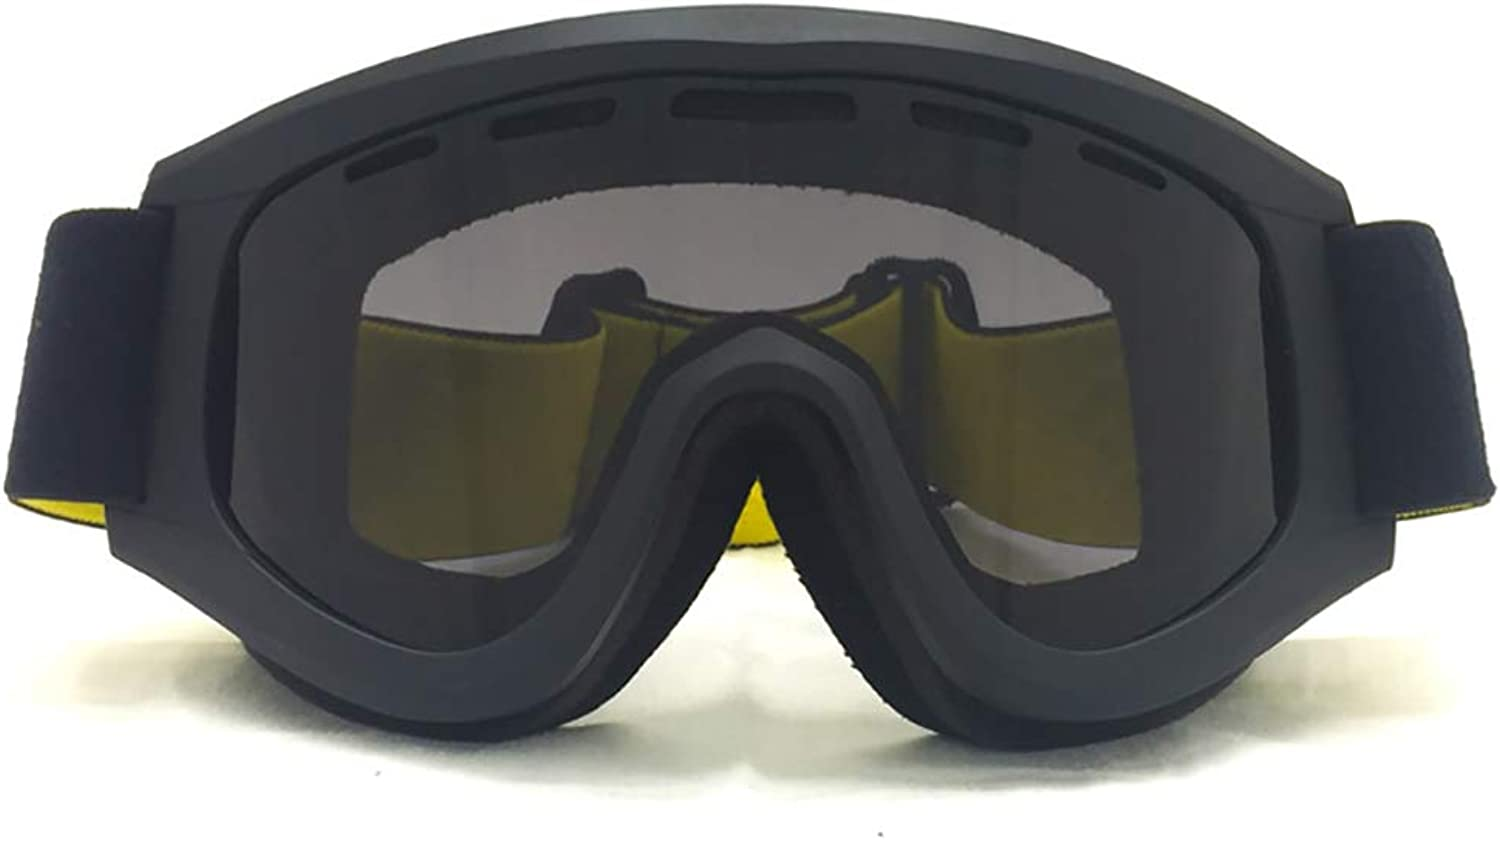 Goggles, DoubleLayer AntiFog and SandProof SnowProof Blind ski Goggles  Outdoor Sports Riding Mountain Bike SUV Glasses,6